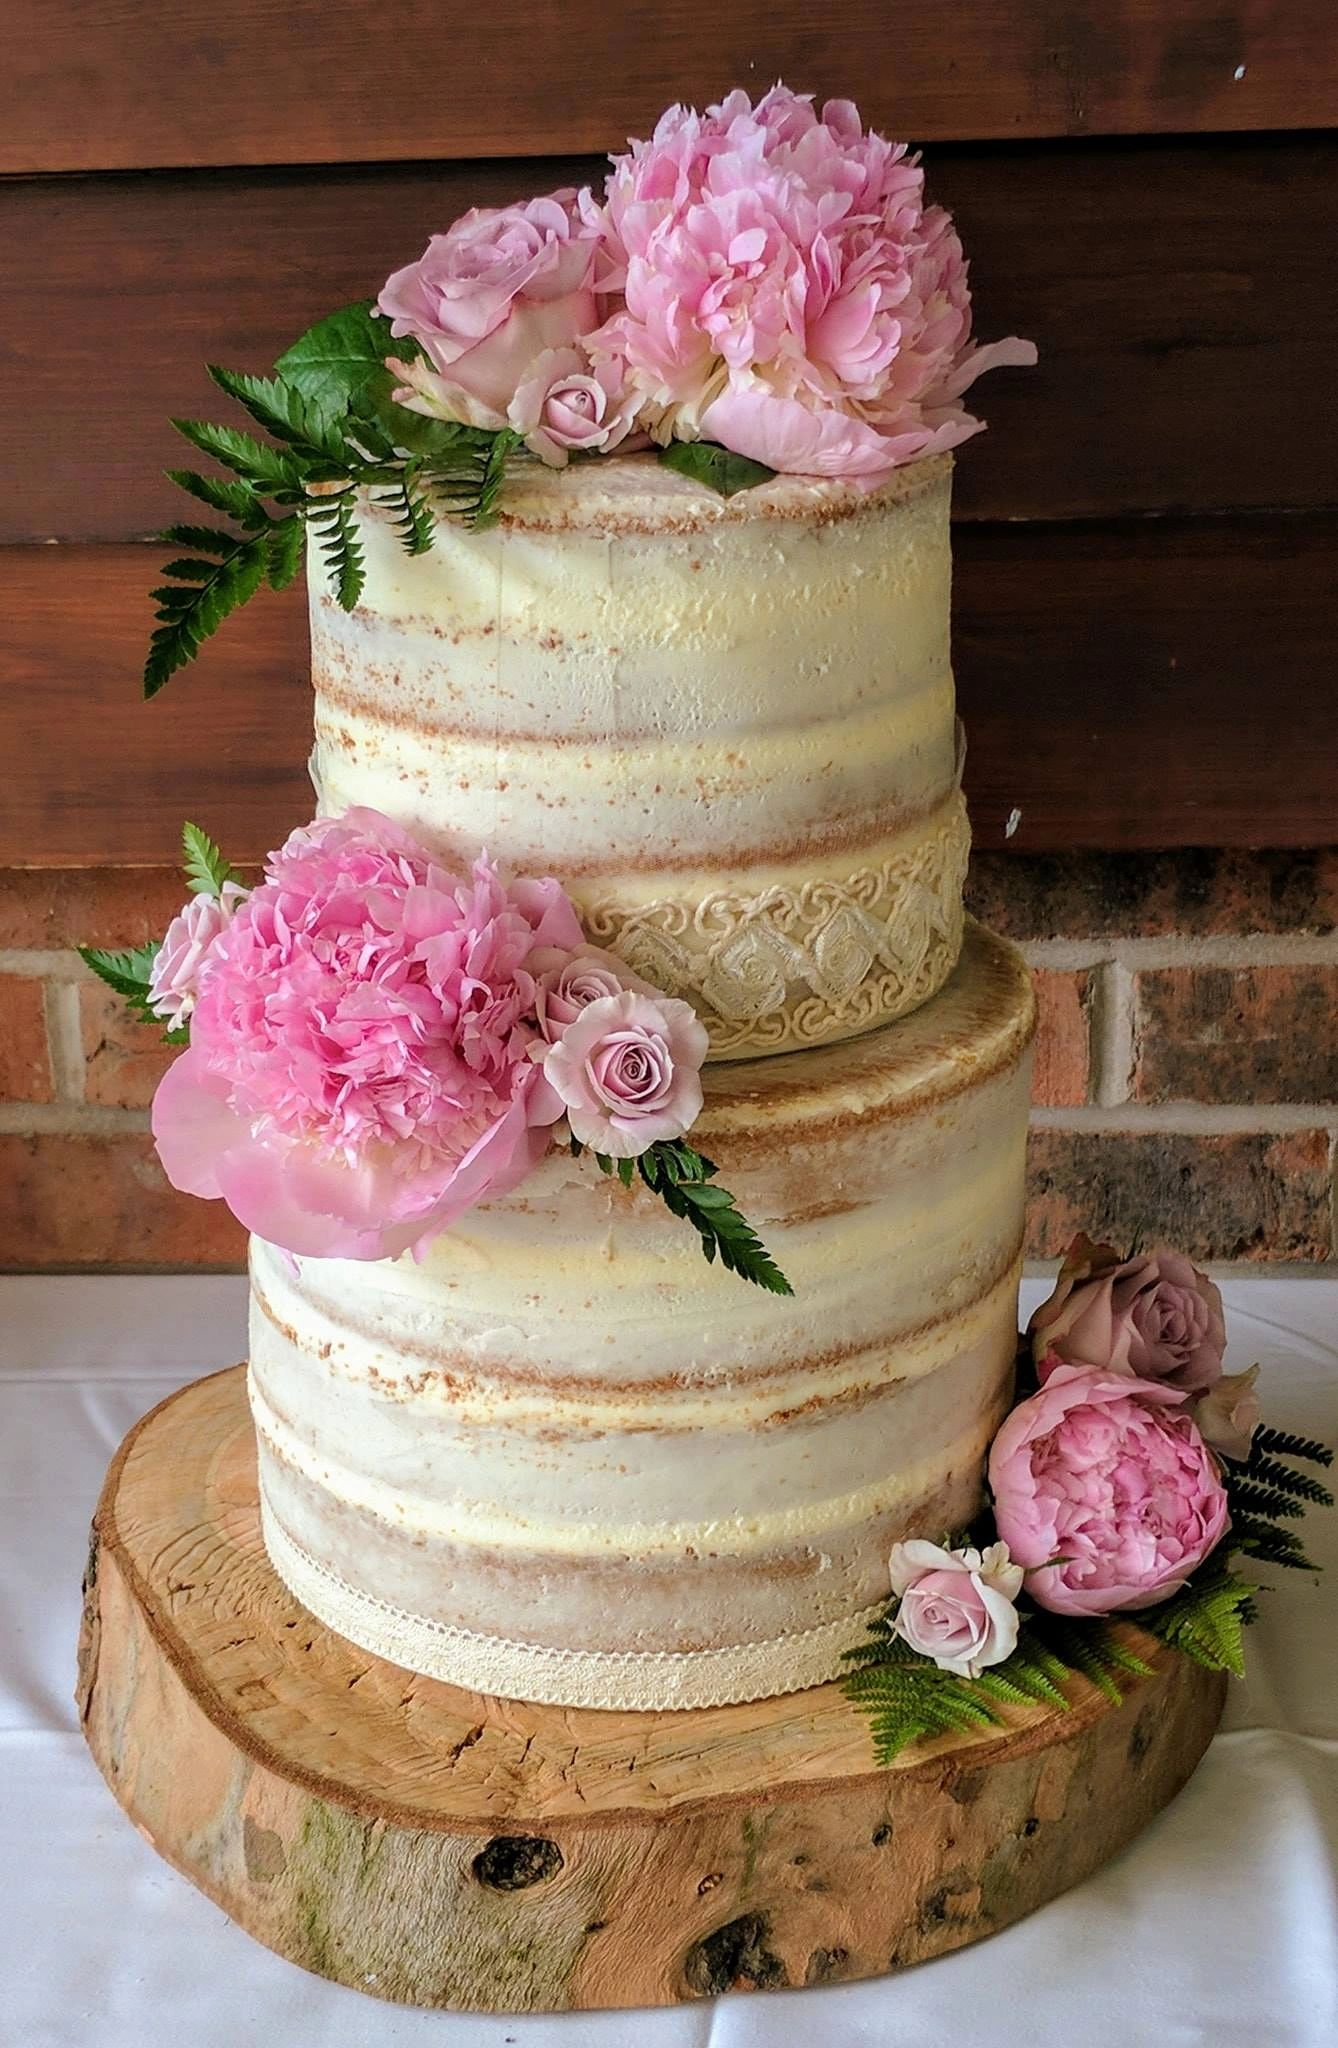 2 Tier semi naked cake with fresh flowers